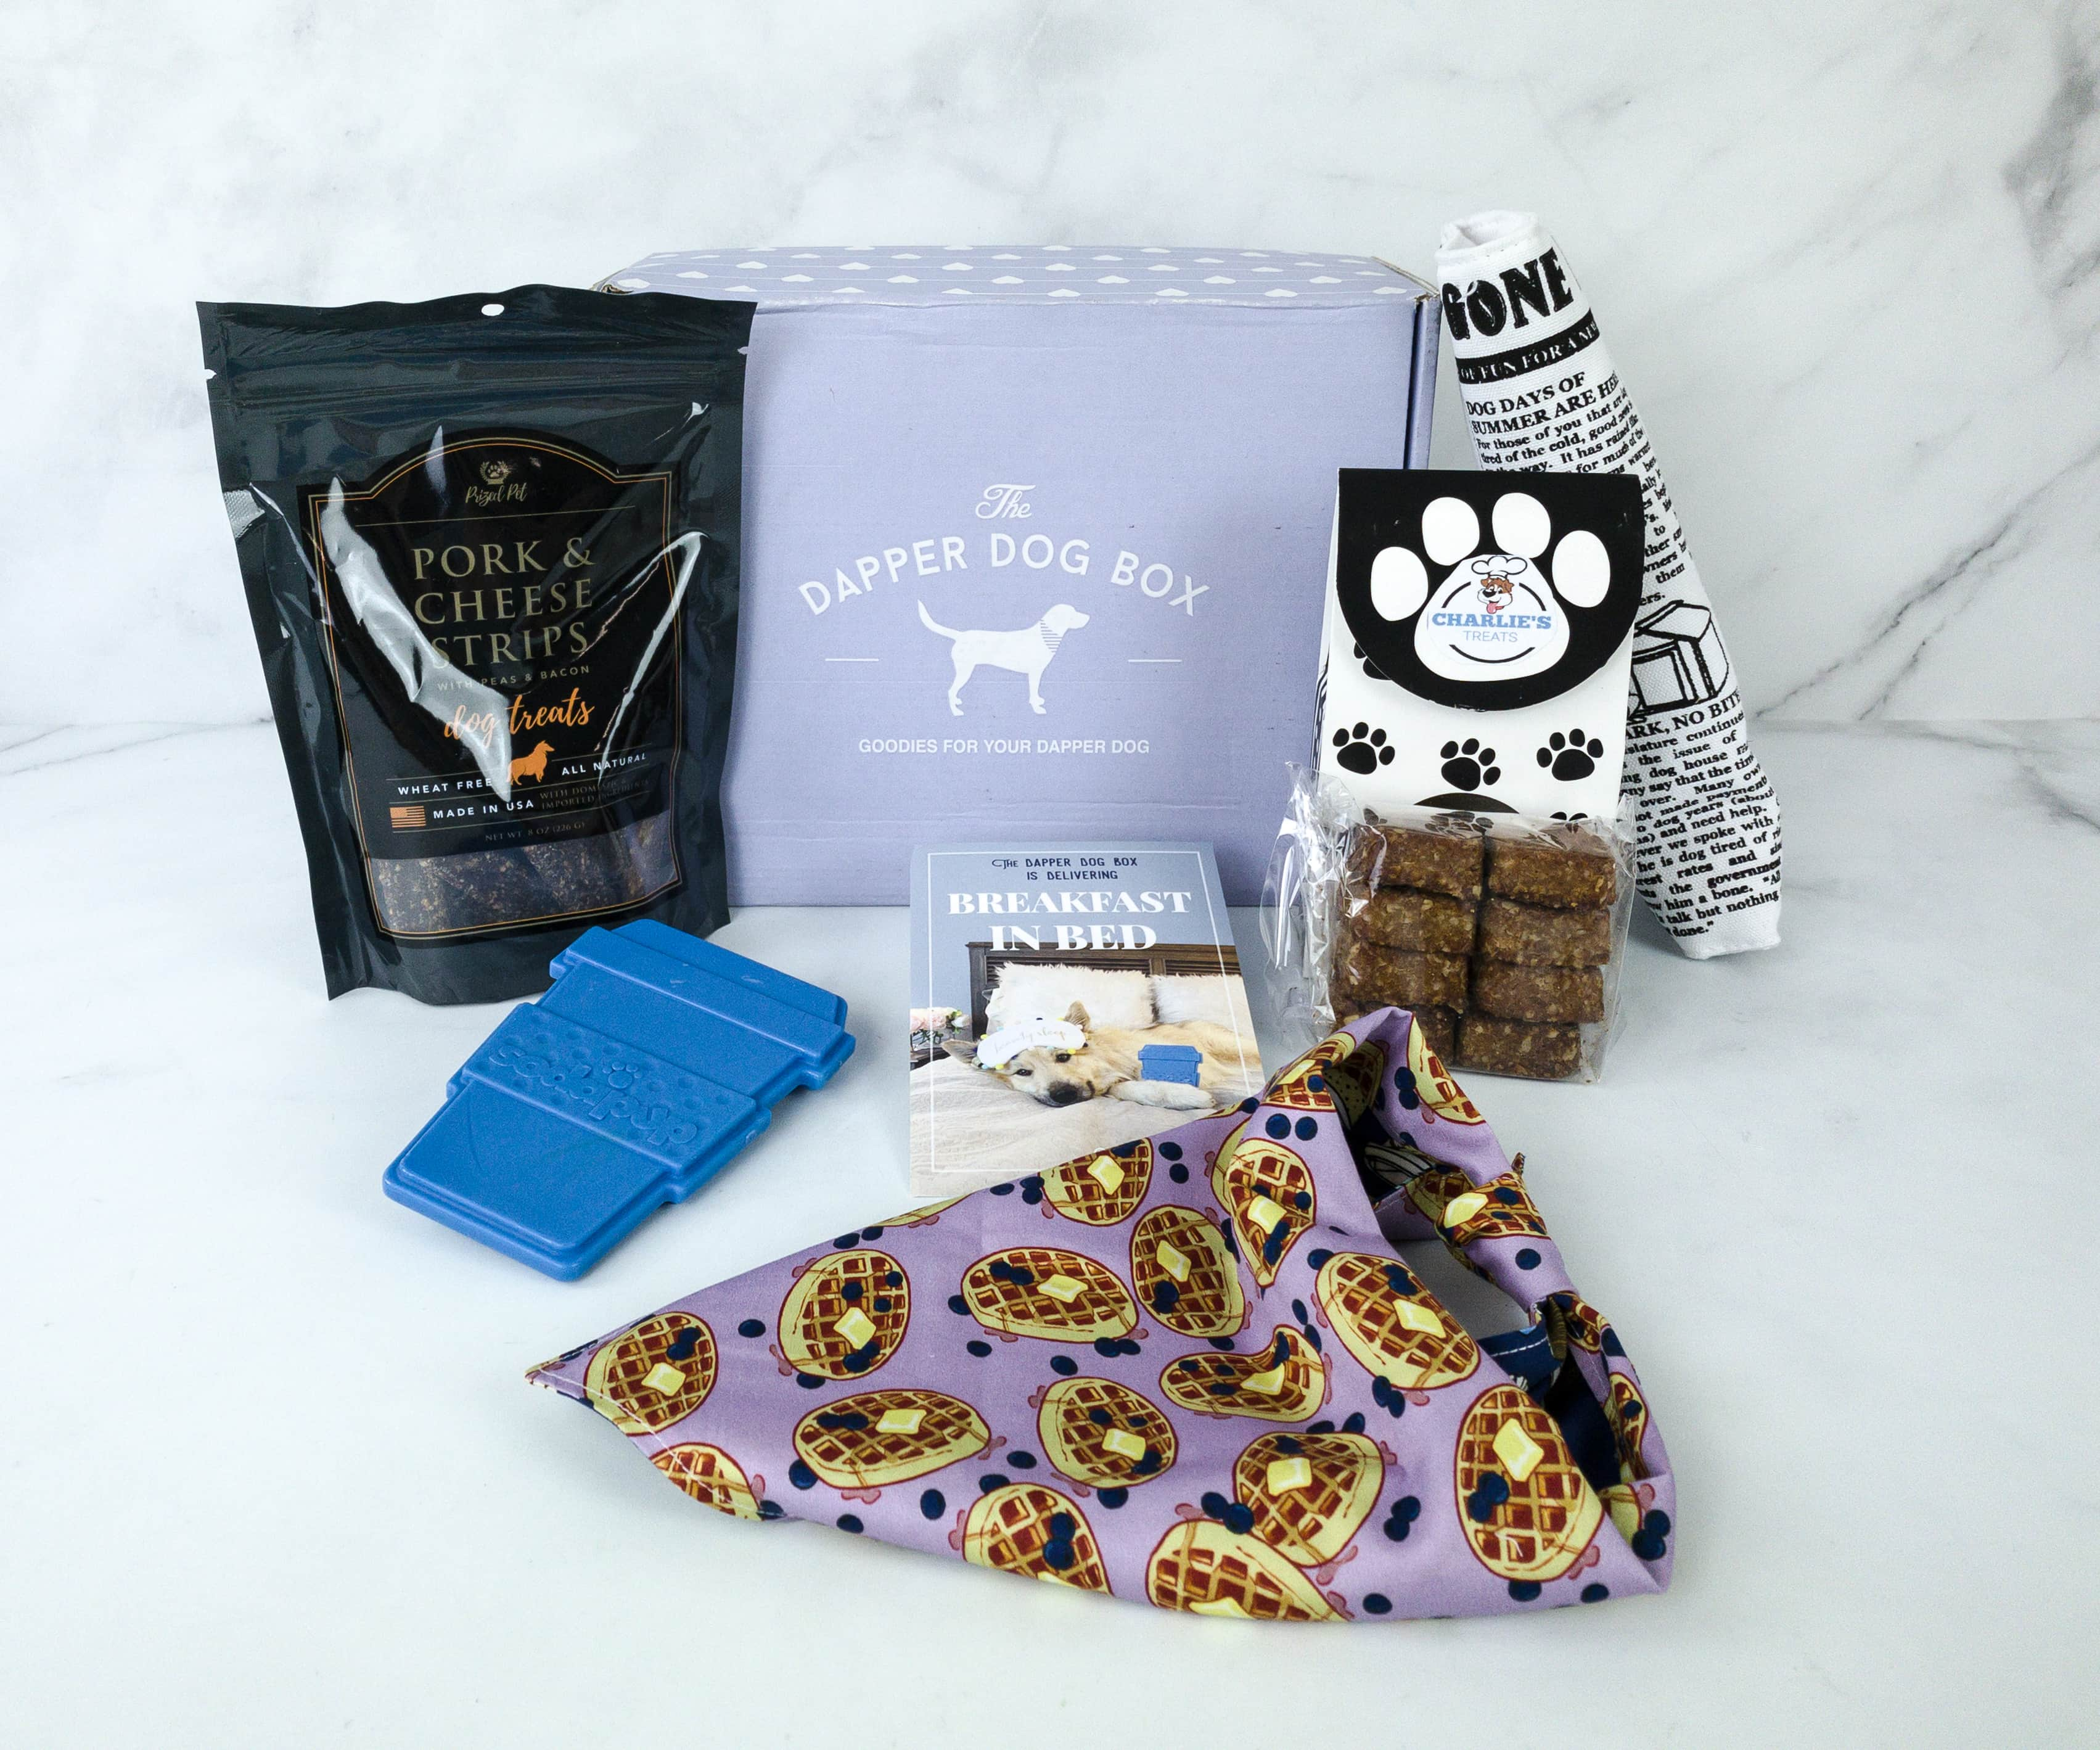 The Dapper Dog Box September 2019 Subscription Box Review + Coupon